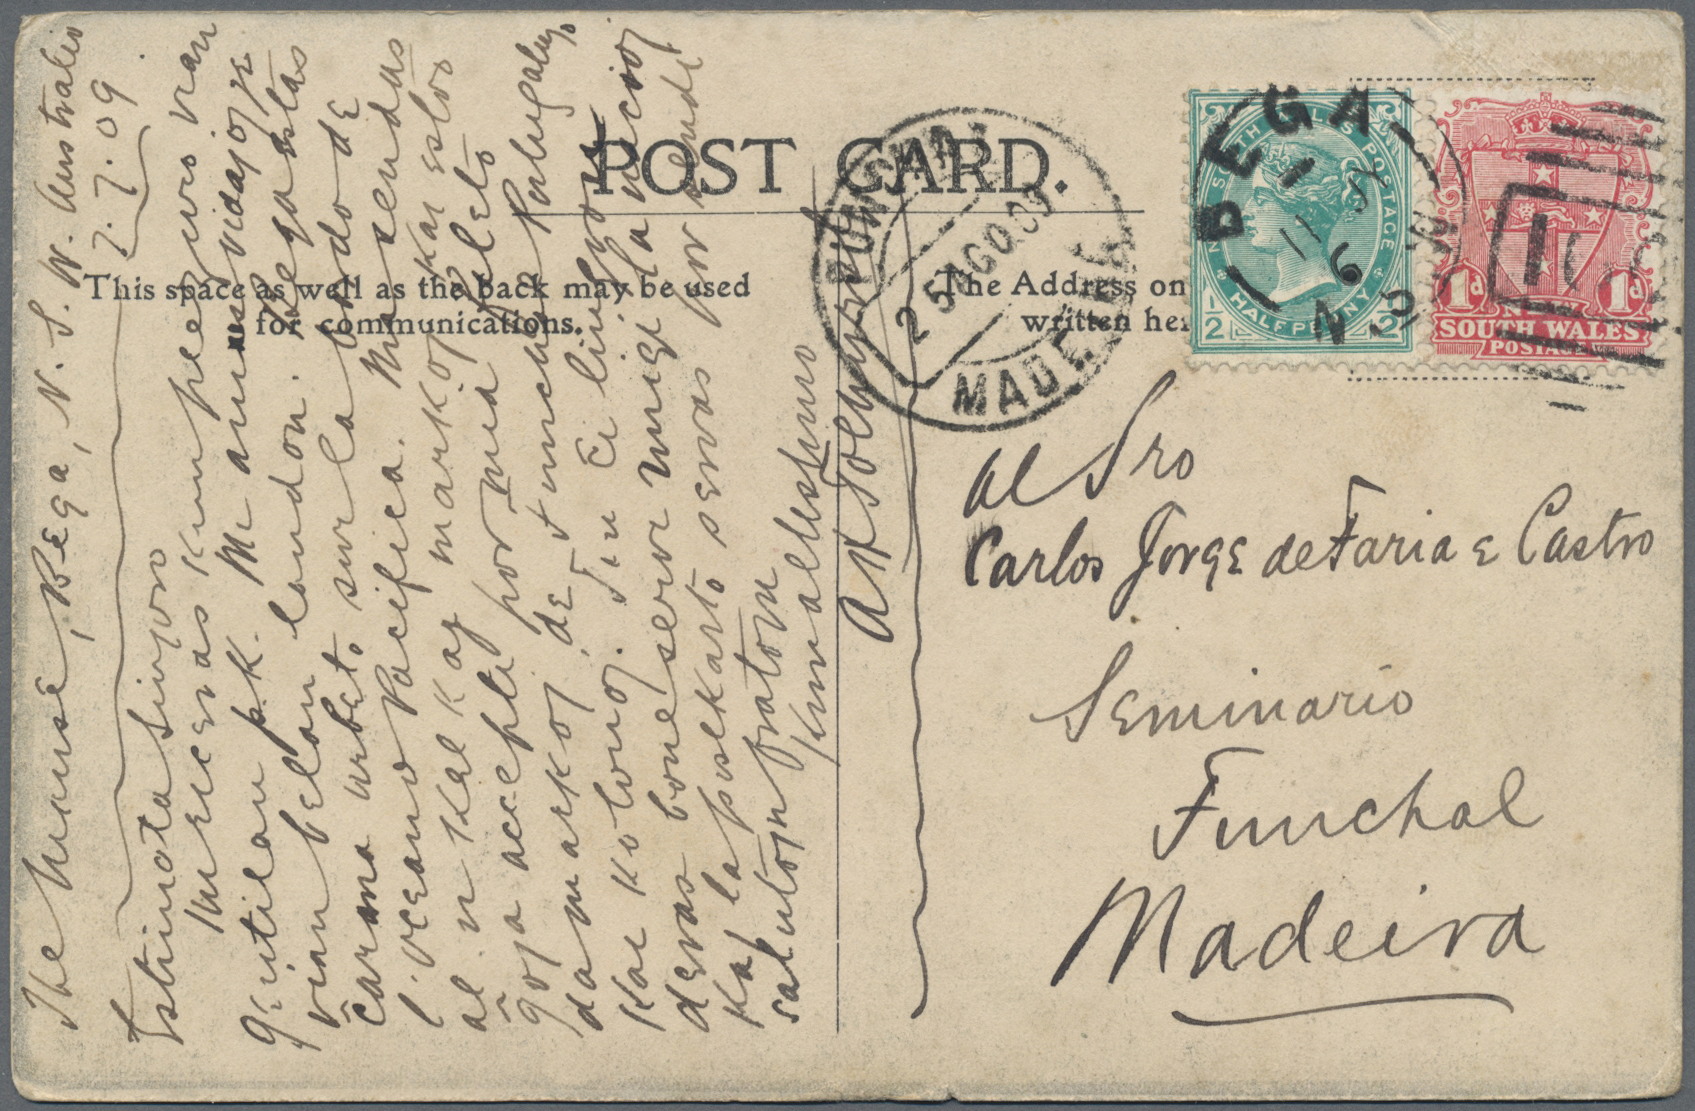 Lot 1364 - Australien + Ozeanien  -  Auktionshaus Christoph Gärtner GmbH & Co. KG Special Auction 26.- 28. May 2020 Day 1 Collections Part 1